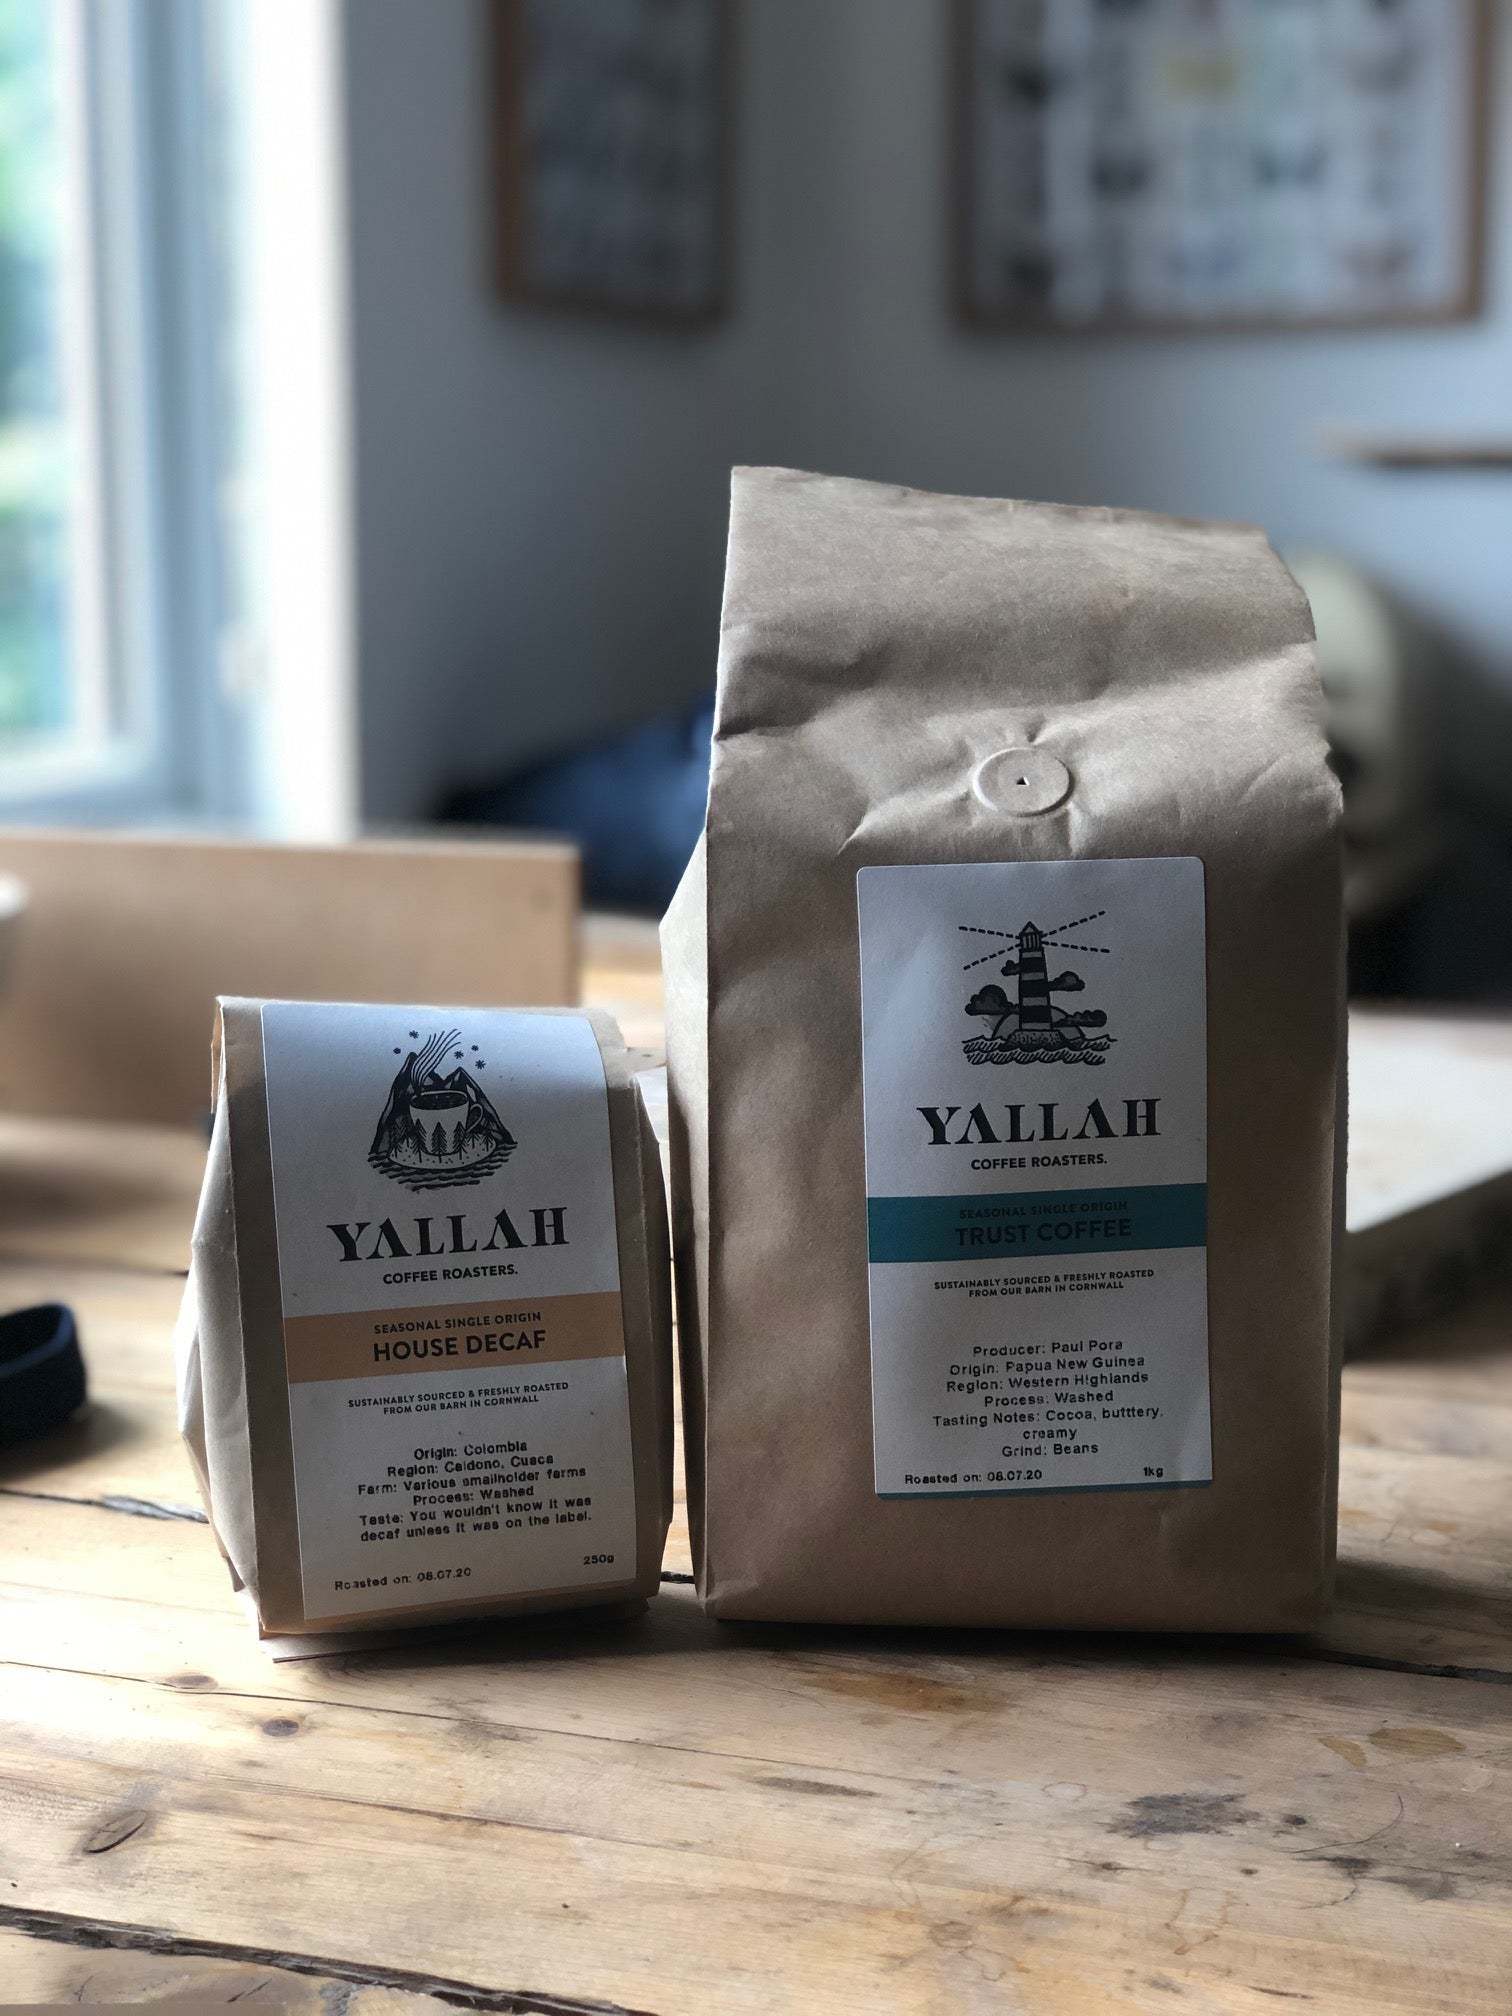 Yallah coffee in Green&Blue studio for Follow Friday competition